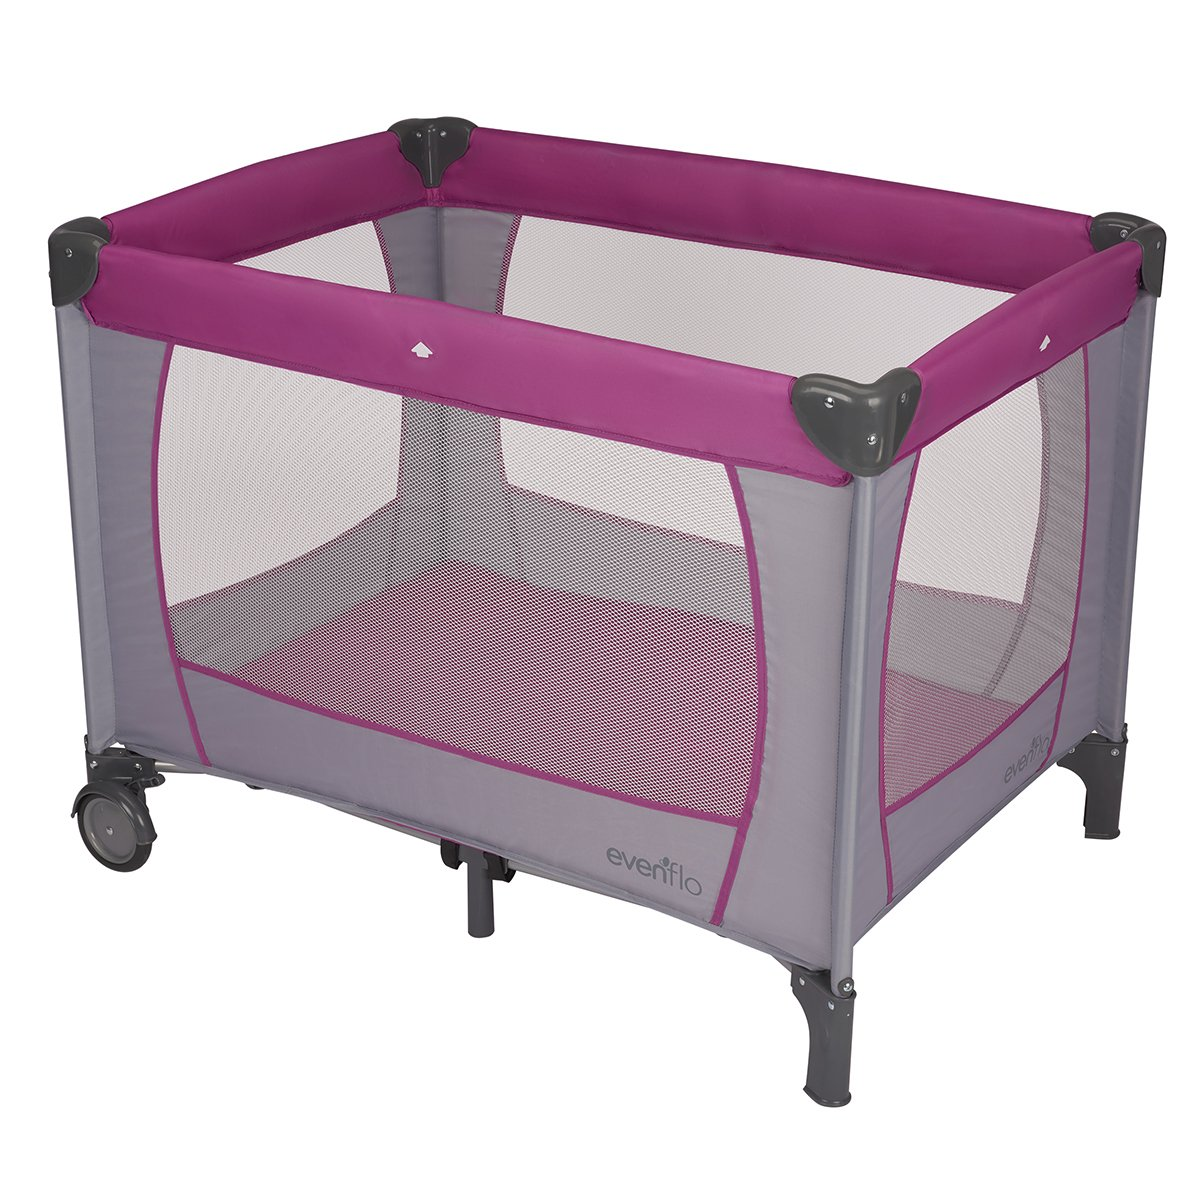 Evenflo Classic Playard, Purple, Grey 70712108